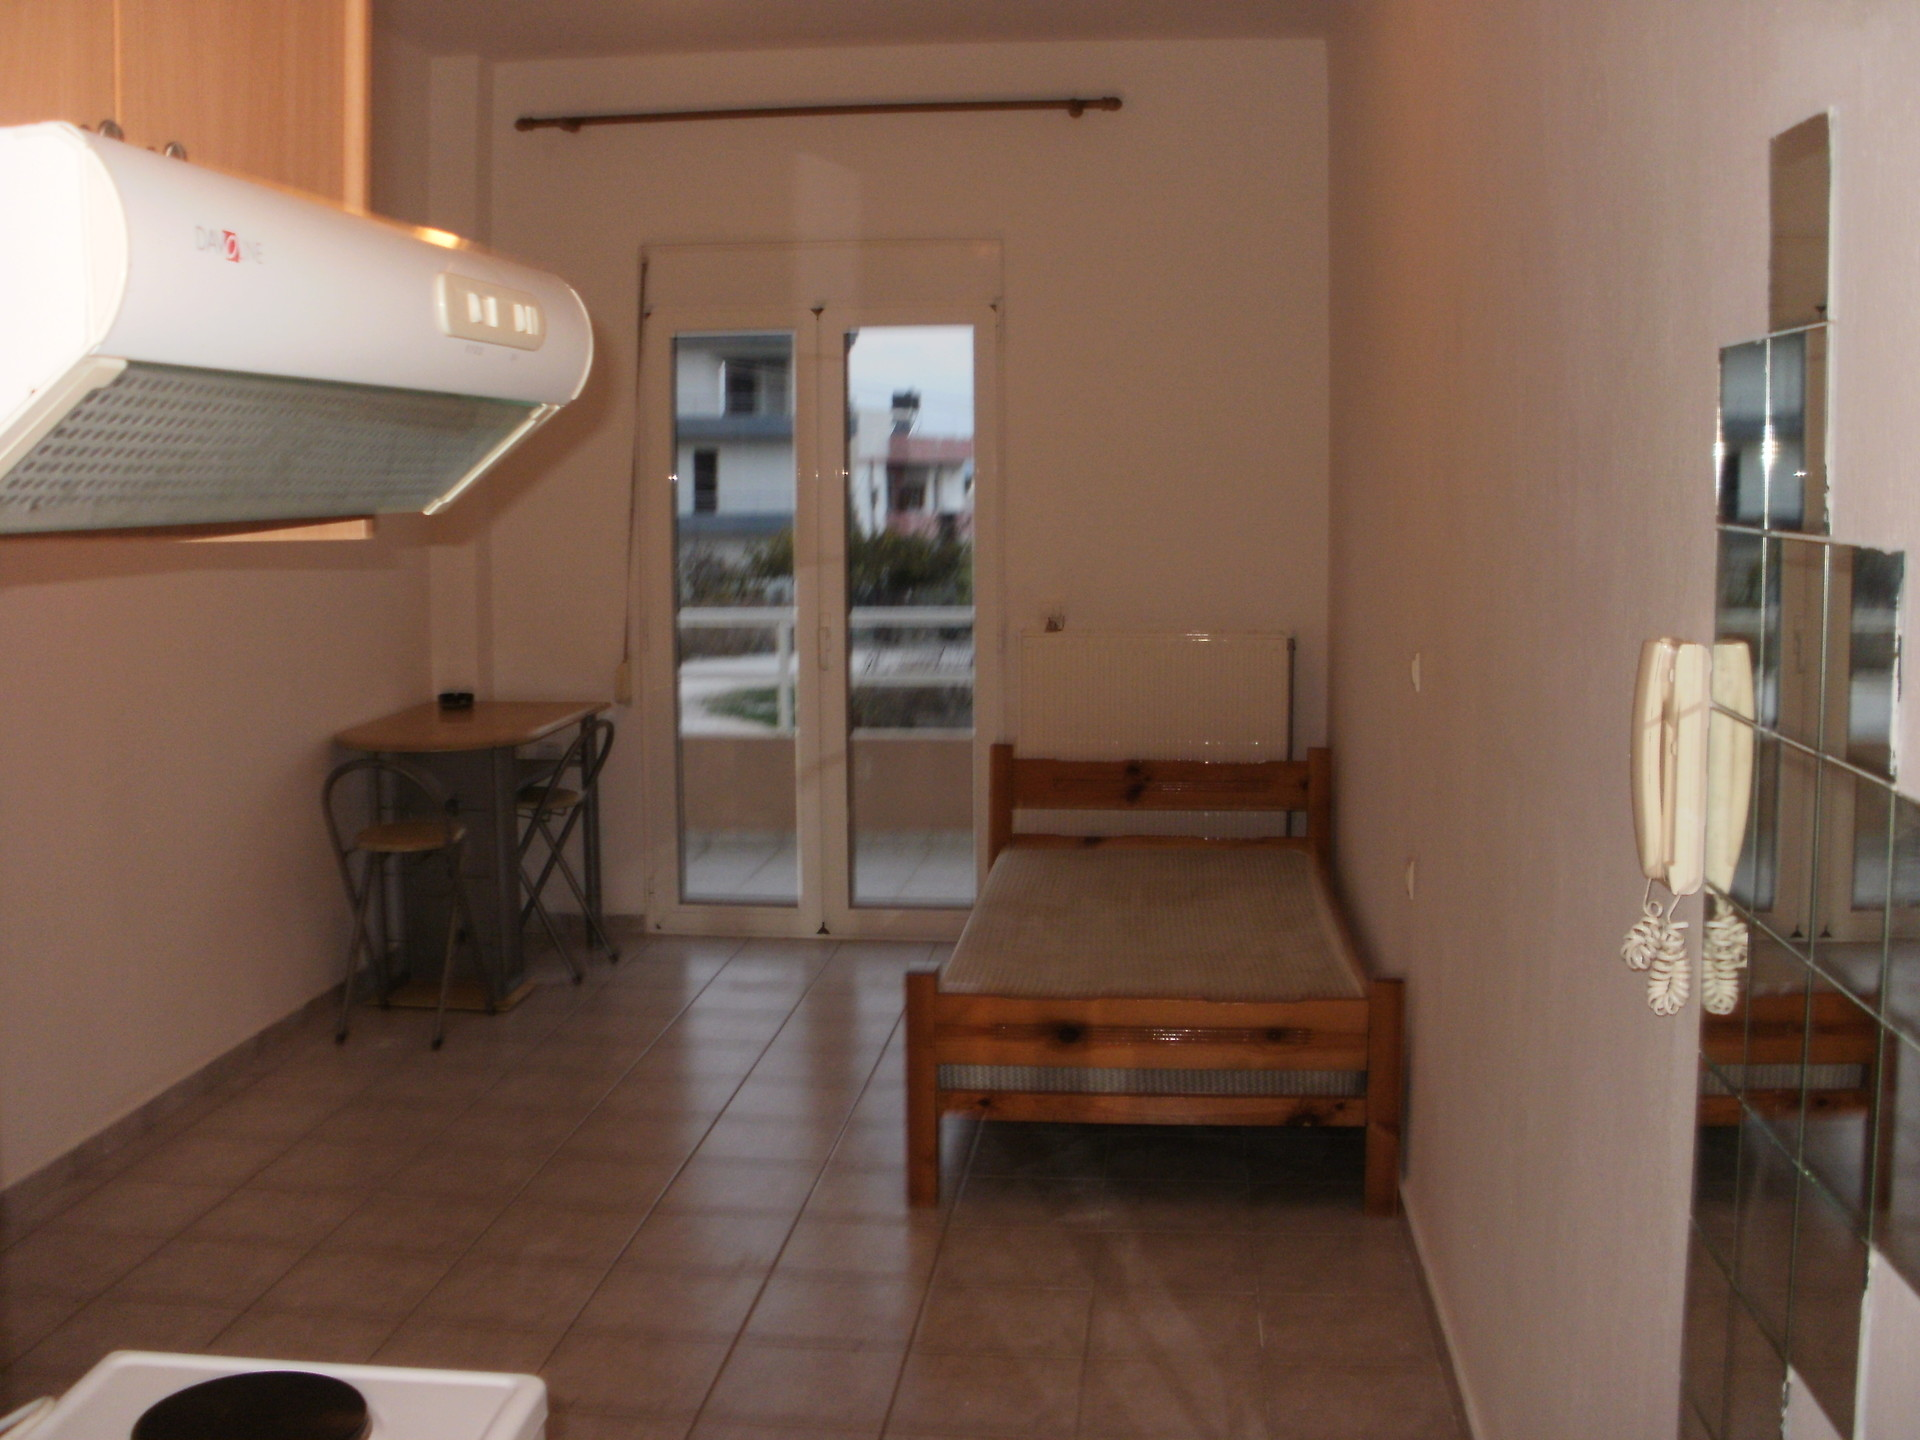 Furnished one room apartment near the university of crete for Furnished room